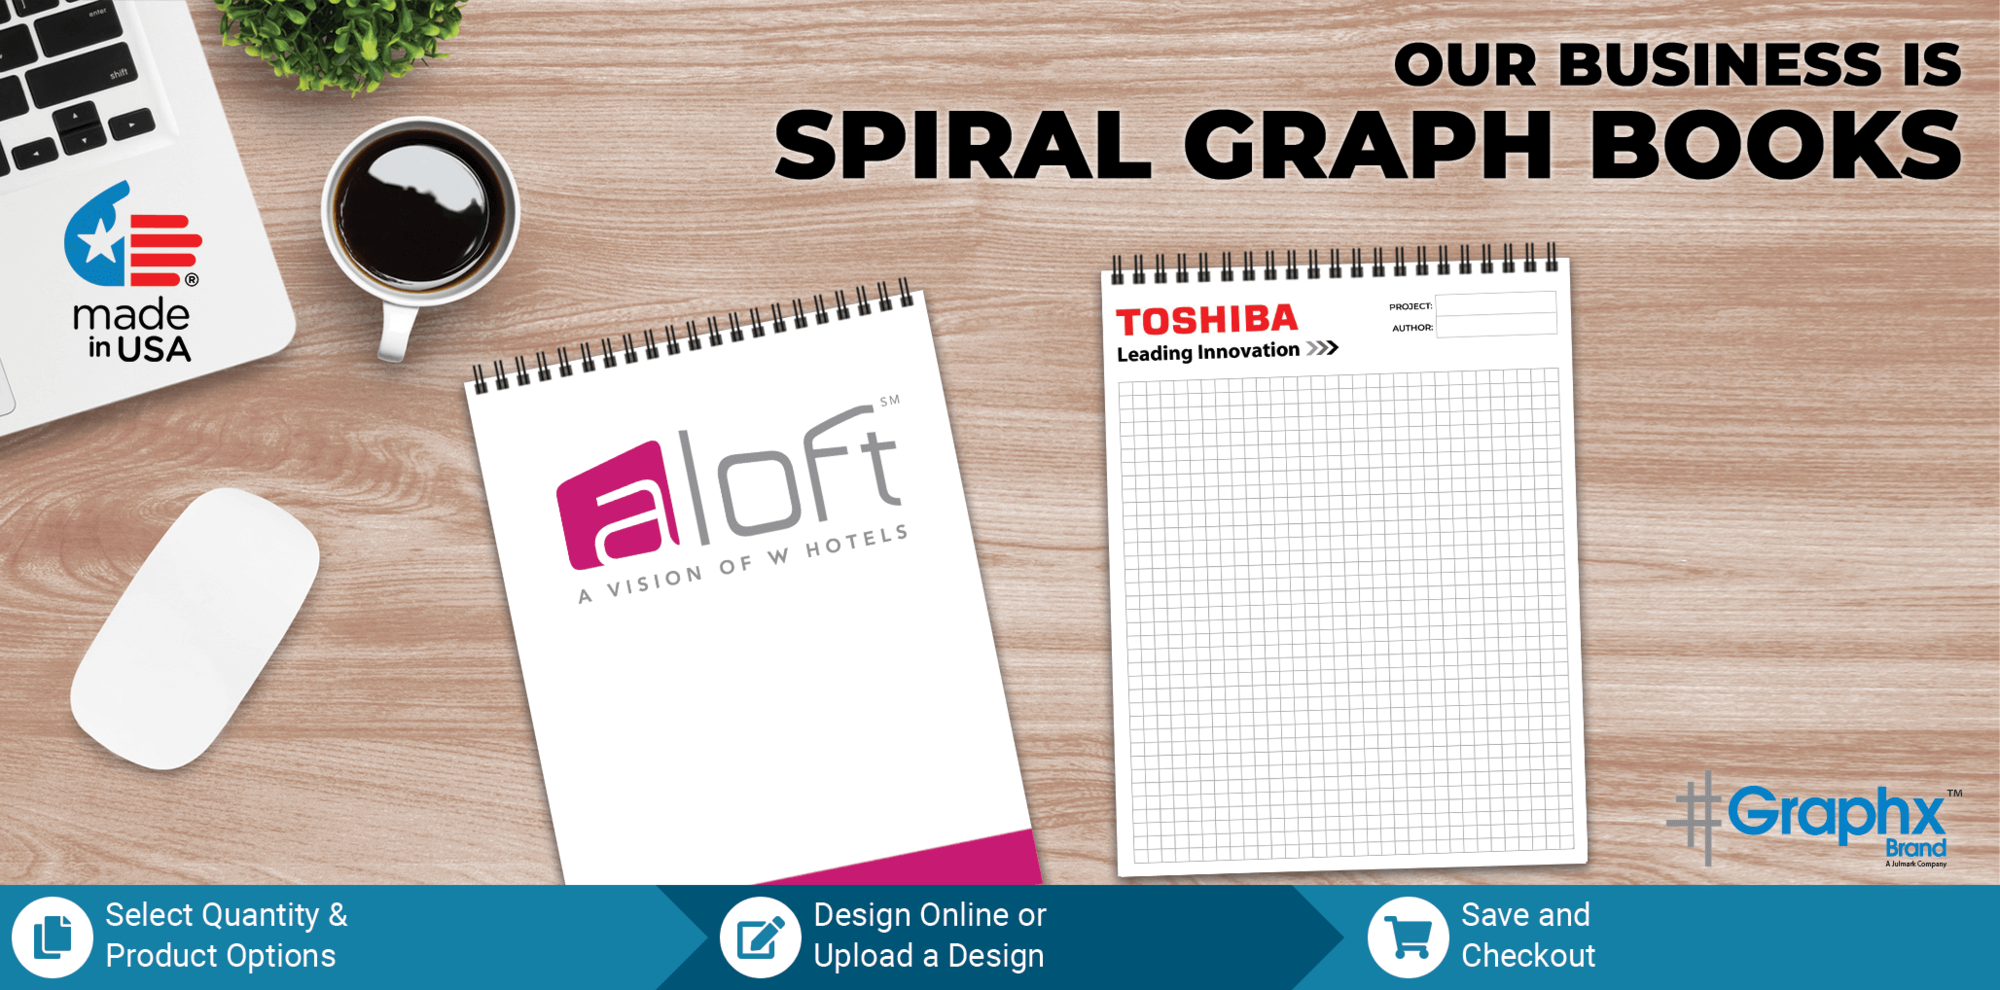 https://printpps.com/images/products_gallery_images/Banner_8_5x11-SpiralGraphPads_ProdFeat_Cover.png